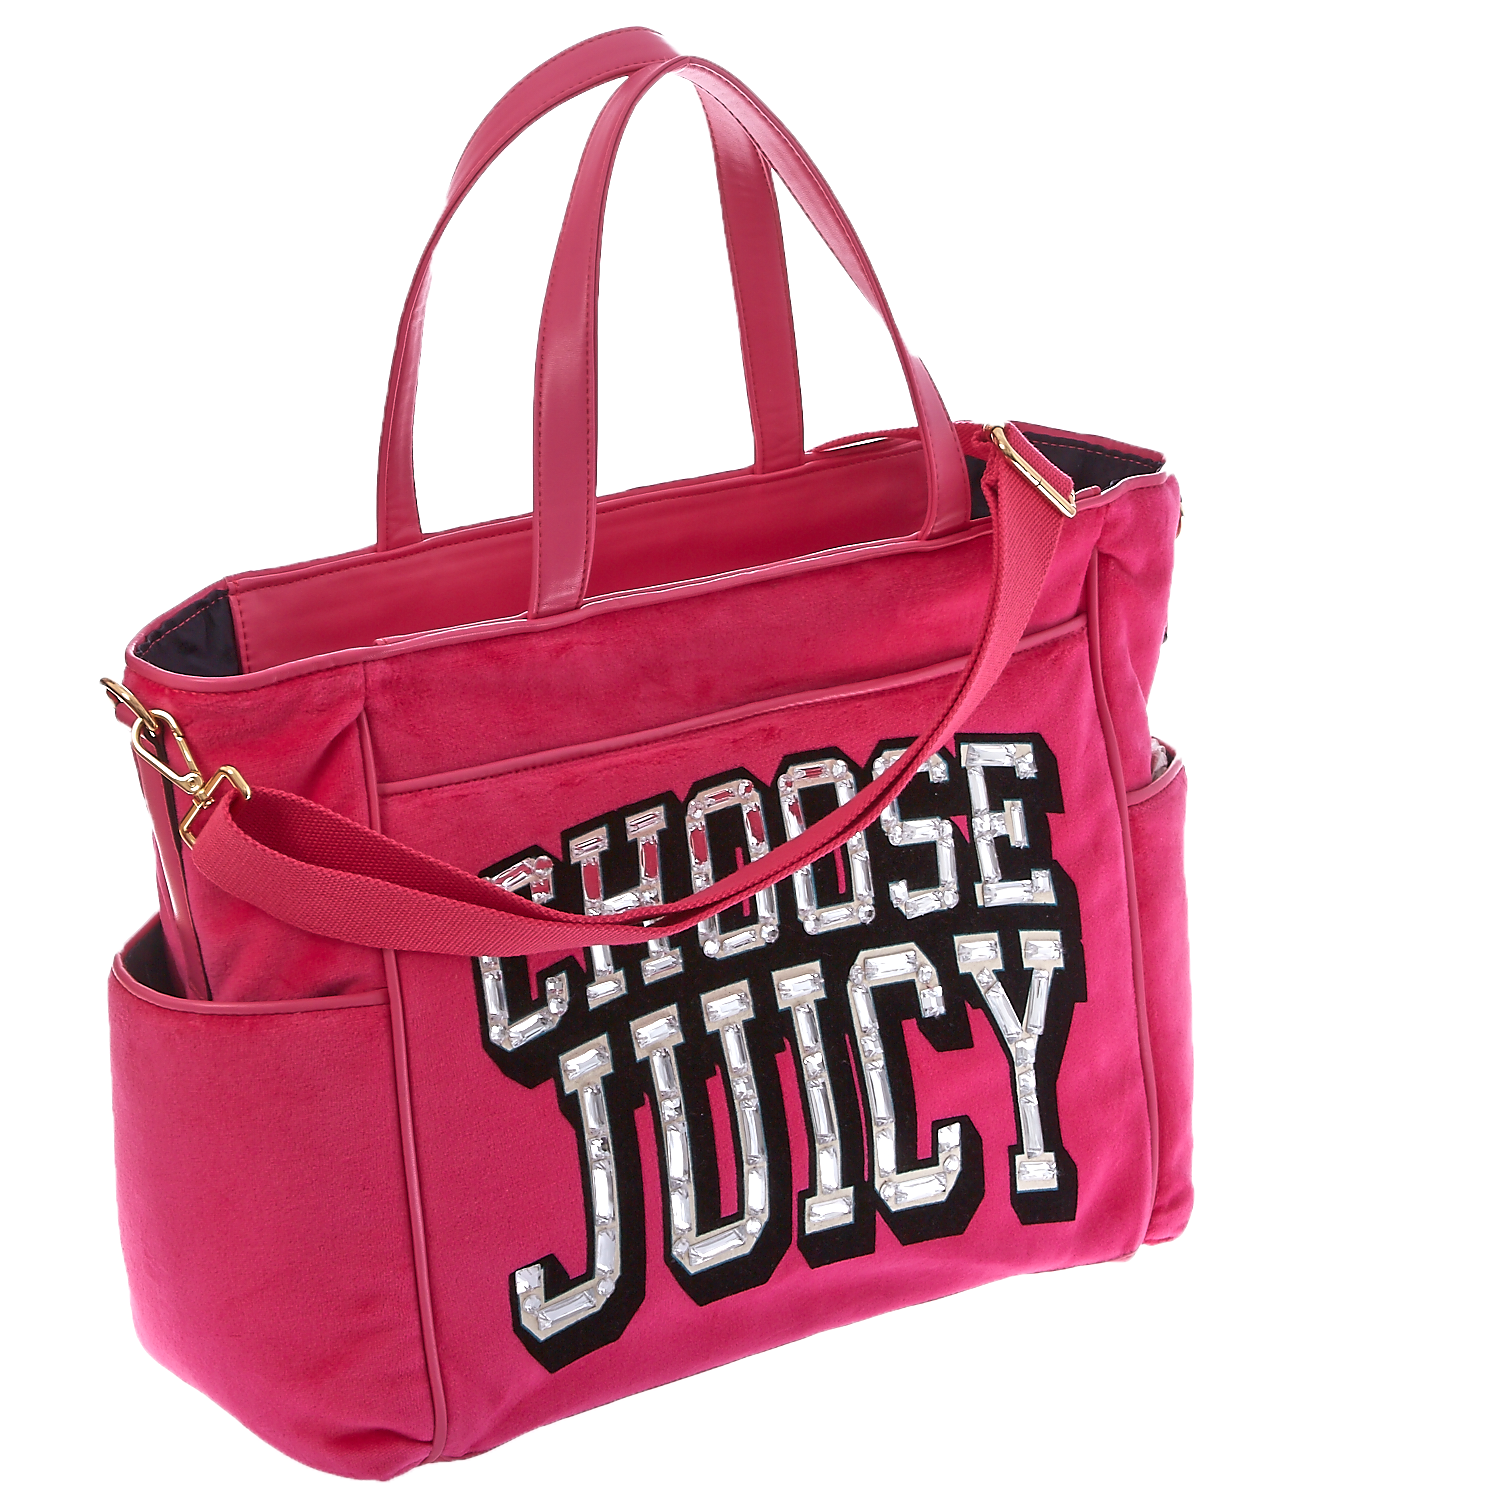 JUICY COUTURE – Τσάντα μωρού Juicy Couture ροζ σκούρο 1409522.0-00P4